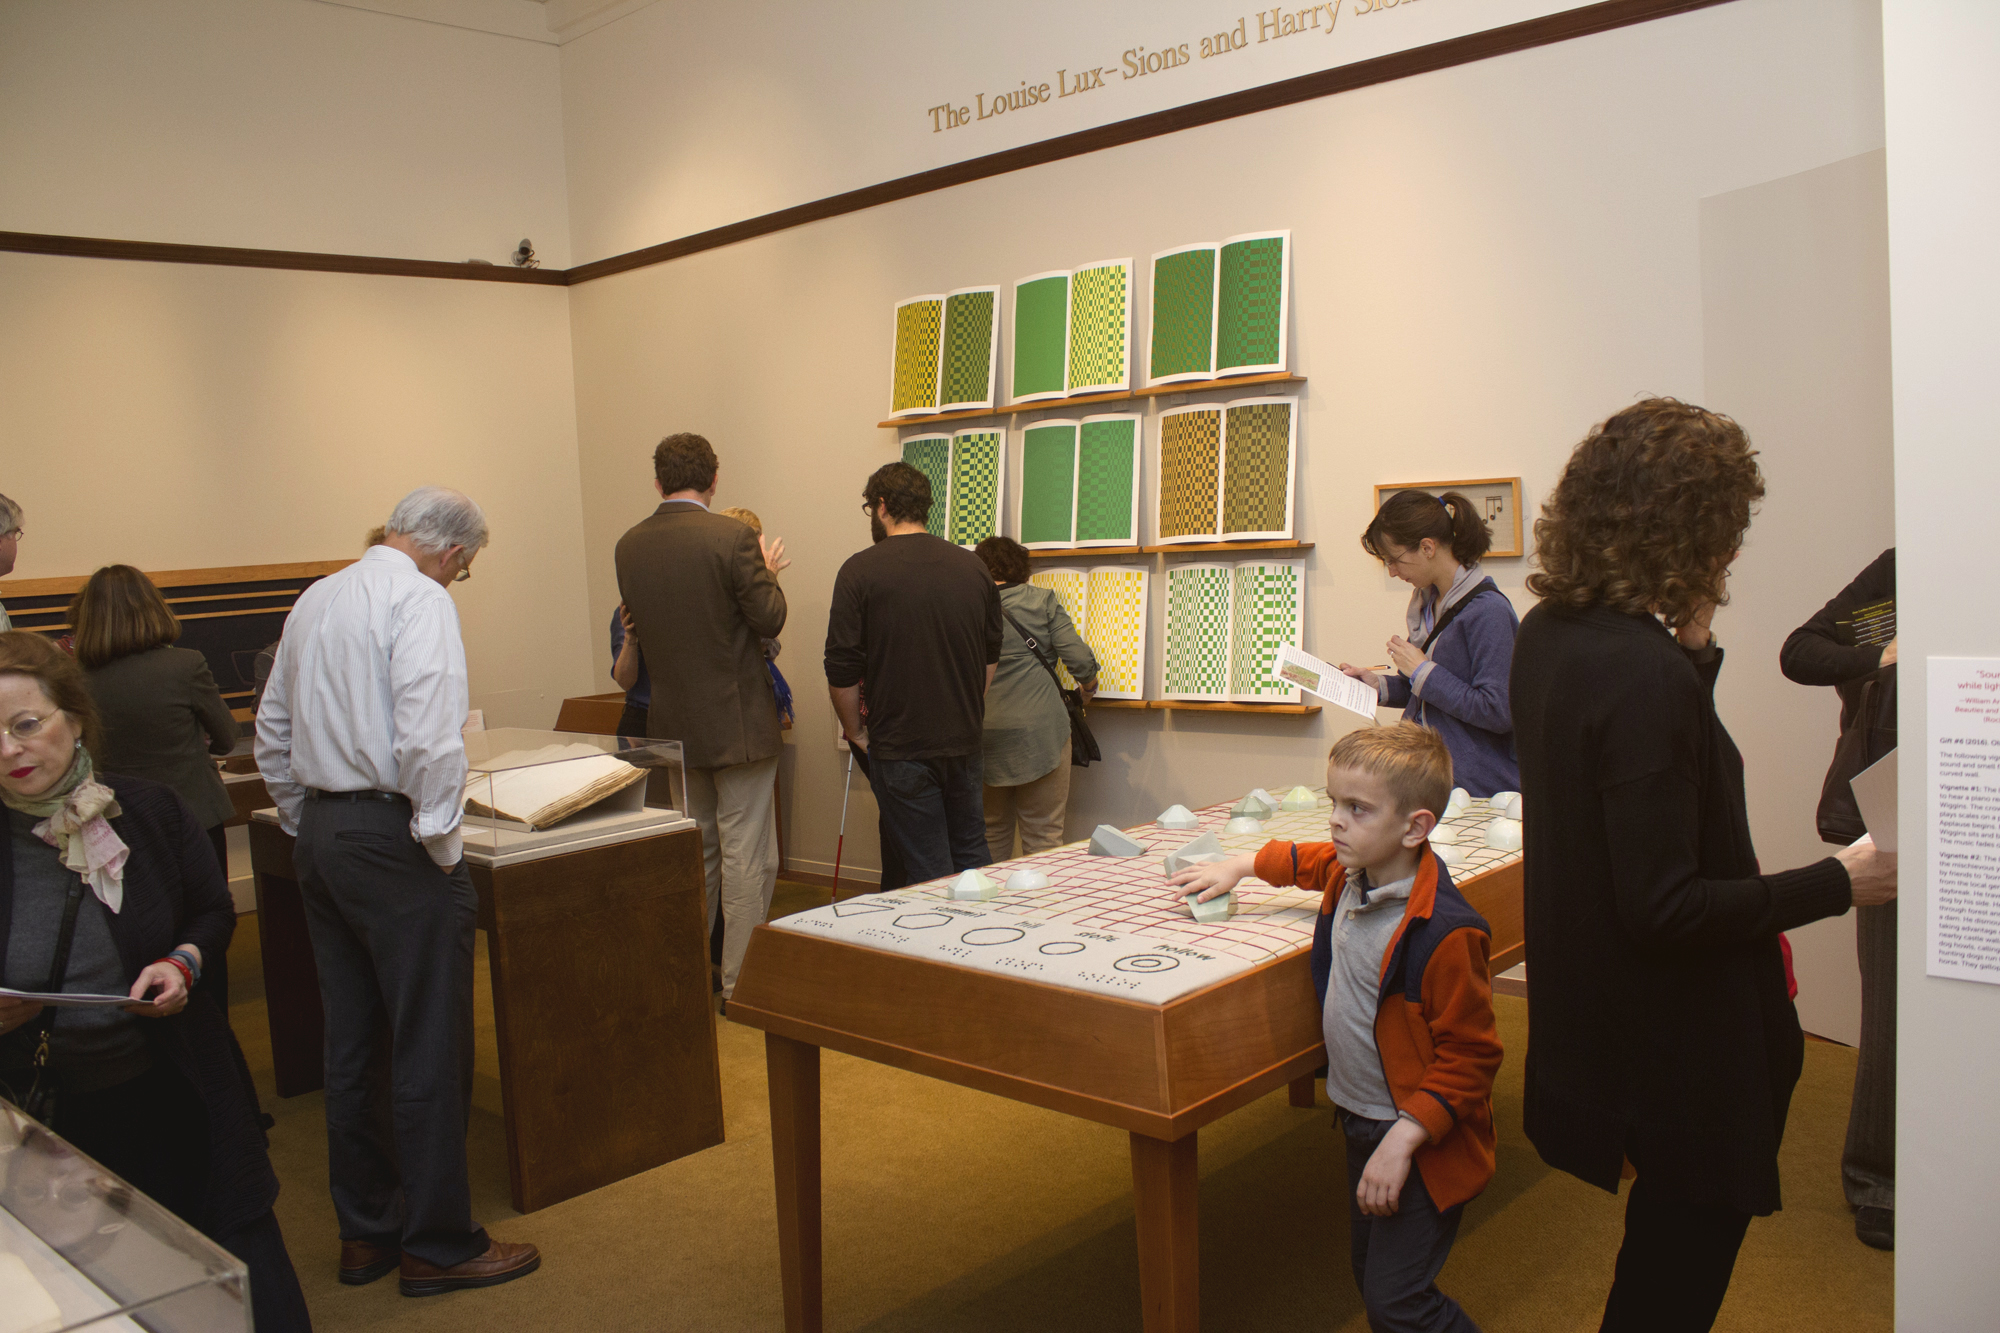 Picture shows several visitors, including a young boy, touching and viewing the installations in the center and east wall of the gallery. In the far left is a large book under a clear, mylar hood in a display case. In the left is Jayne's Gift #5, a map representation of the travels the 19th–century blind surveyor John Metcalf. It is a vertically-positioned, large rectangular table composed of a linen top and a light brown wood base. A multi-color grid, outlines of geometric shapes, and green porcelain geometric shapes adorn the linen top. In the center background, on the back wall painted off-white, is Jayne's Gift #4, a visual transmutation after the musical work of blind African American musician Thomas Wiggins. It is three horizontal and three vertical rows of prints in a geometric interplay of greens, browns and yellows. [end of description]